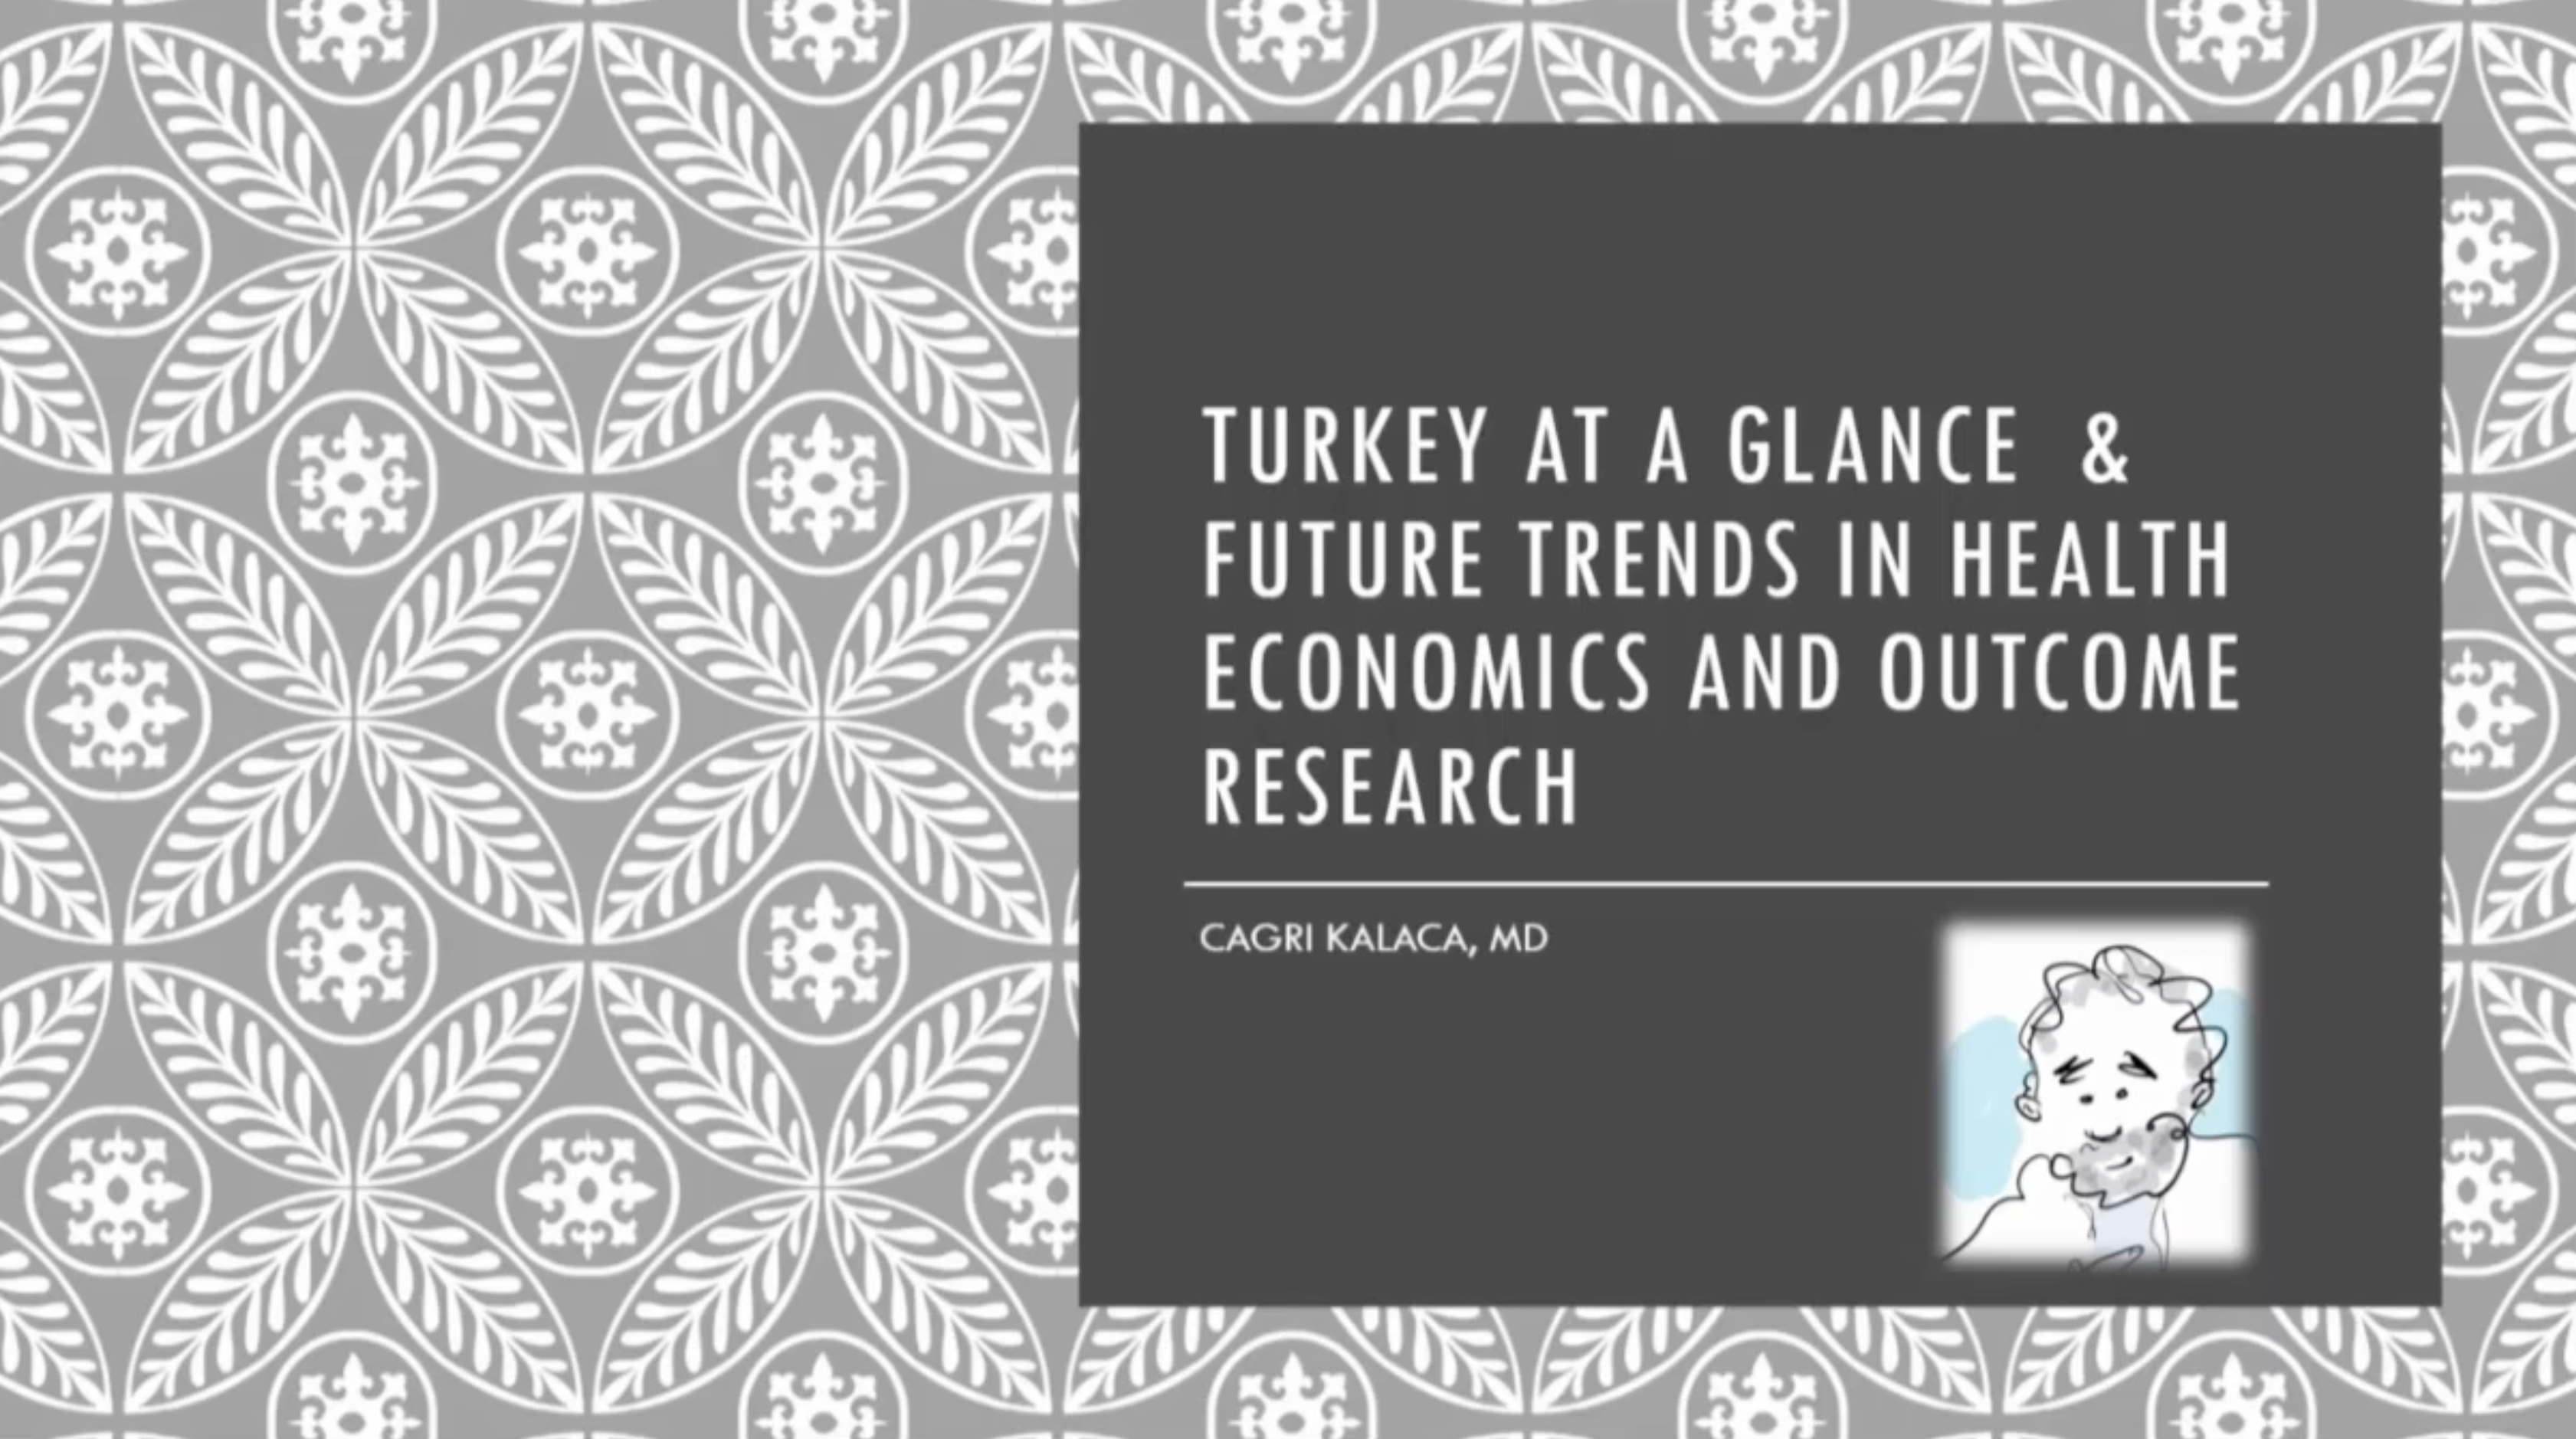 TURKEY AT A GLANCE AND FUTURE TRENDS IN HEALTH ECONOMICS Kalaca